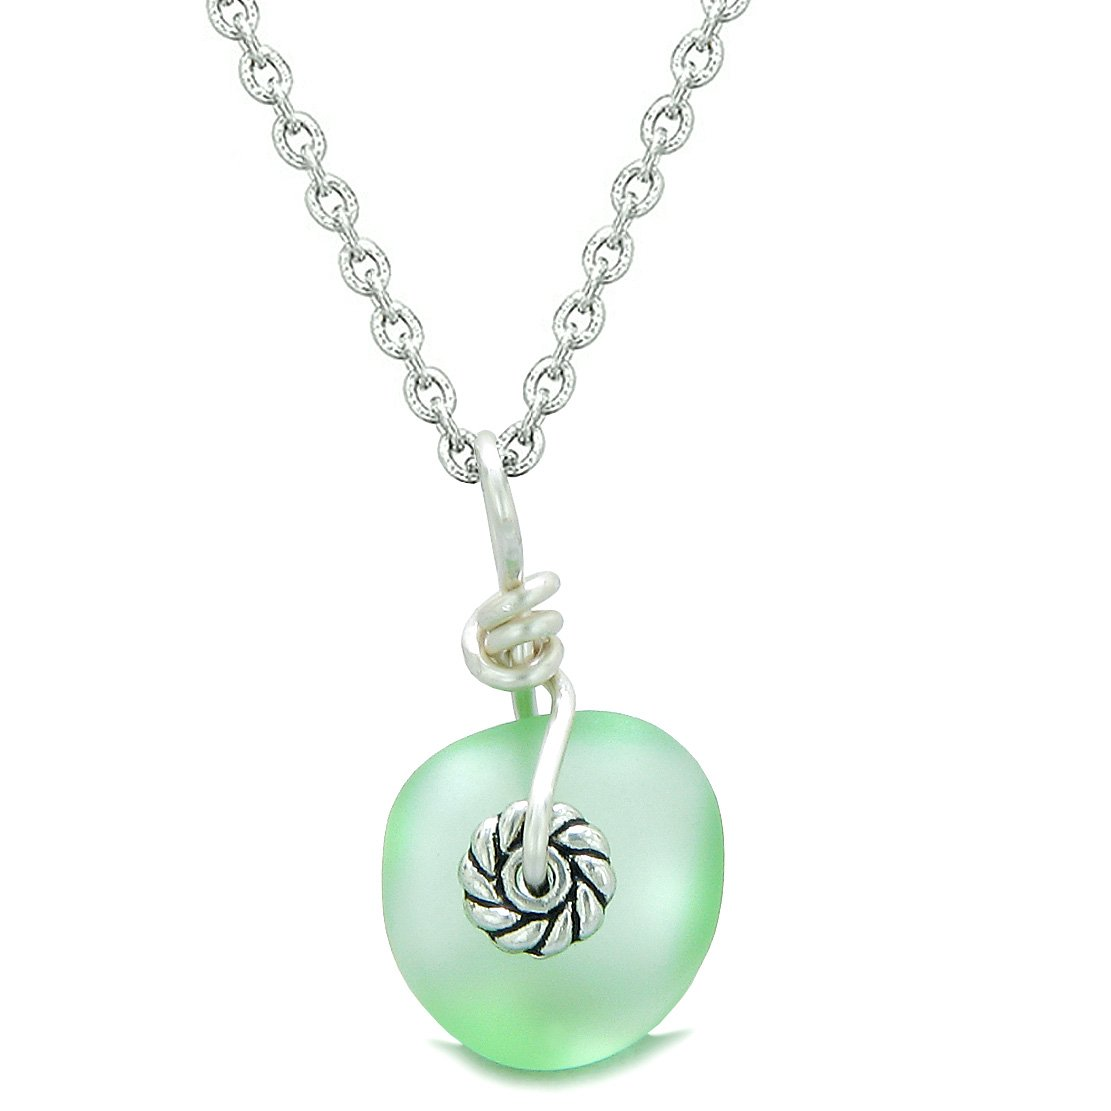 Twisted Twincies Small Cute Frosted Sea Glass Lucky Charms Handcrafted Mint Green 22 Inch Necklace